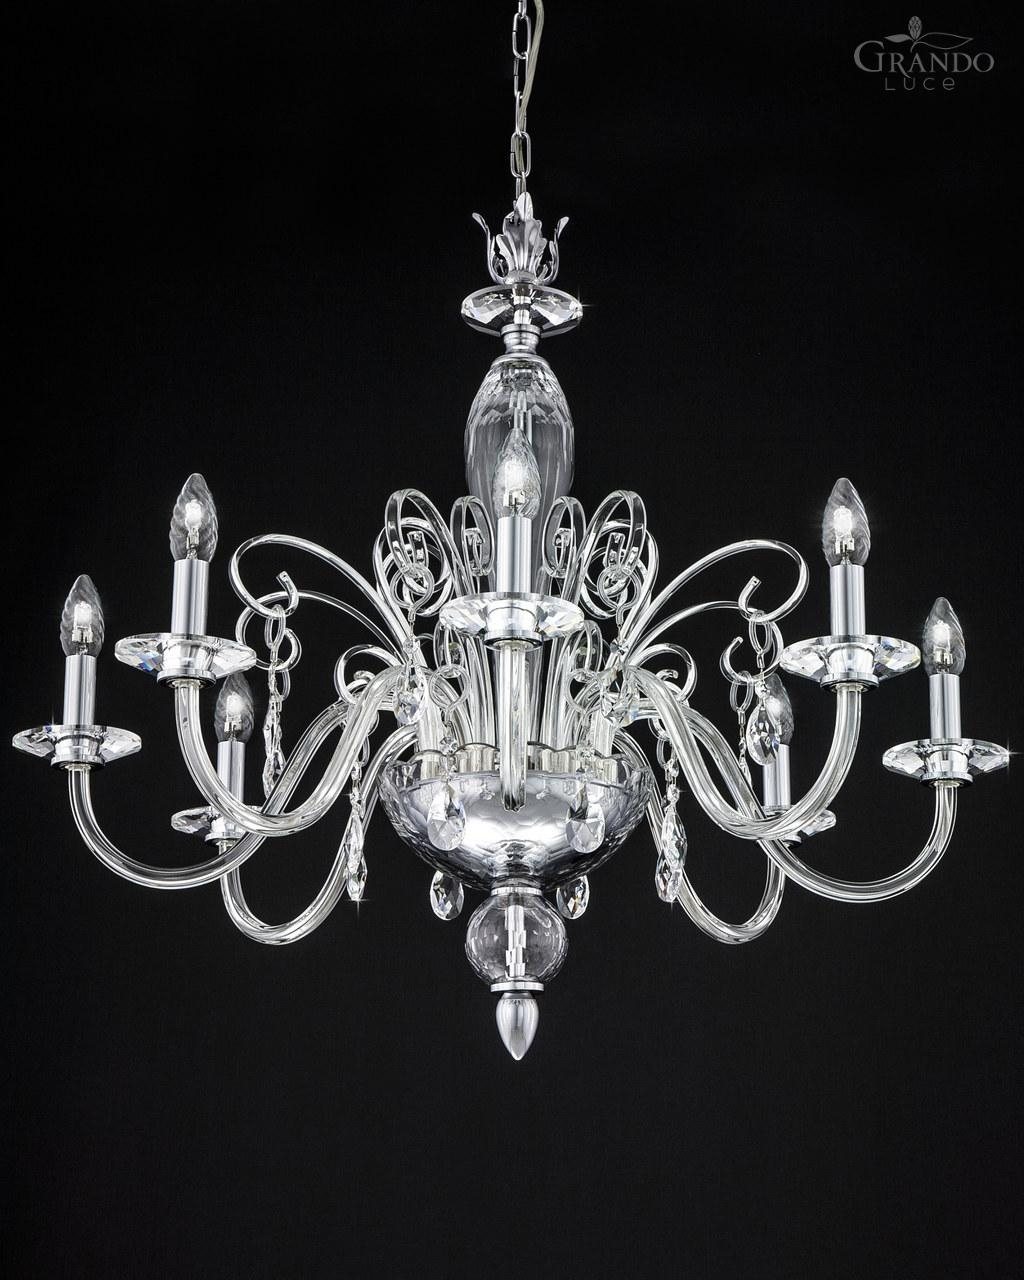 1208 Ch Chrome Crystal Chandelier With Swarovski Elements With Chandelier Chrome (Image 1 of 15)